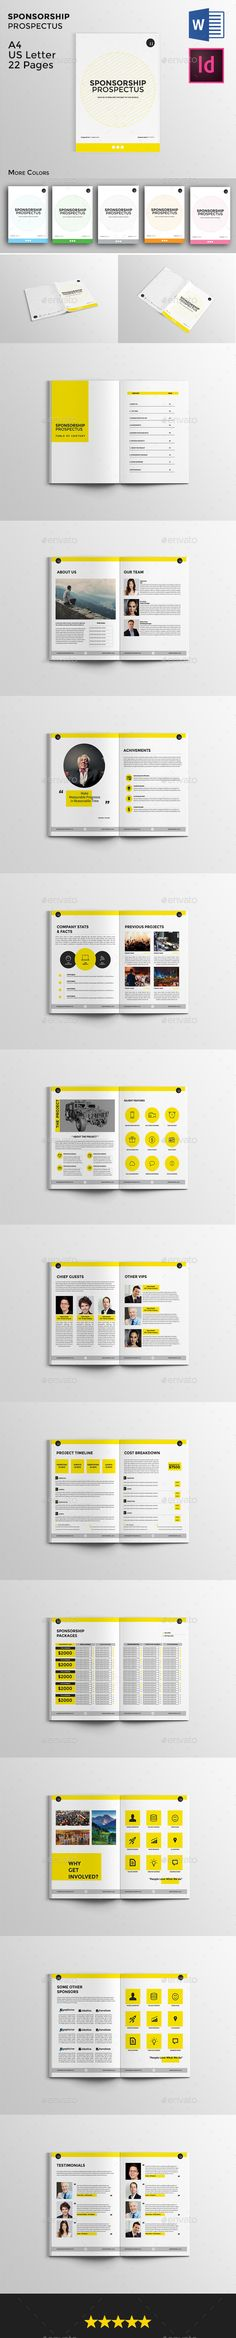 Sponsorship Prospectus Template design Download httpgraphicrivernetitem